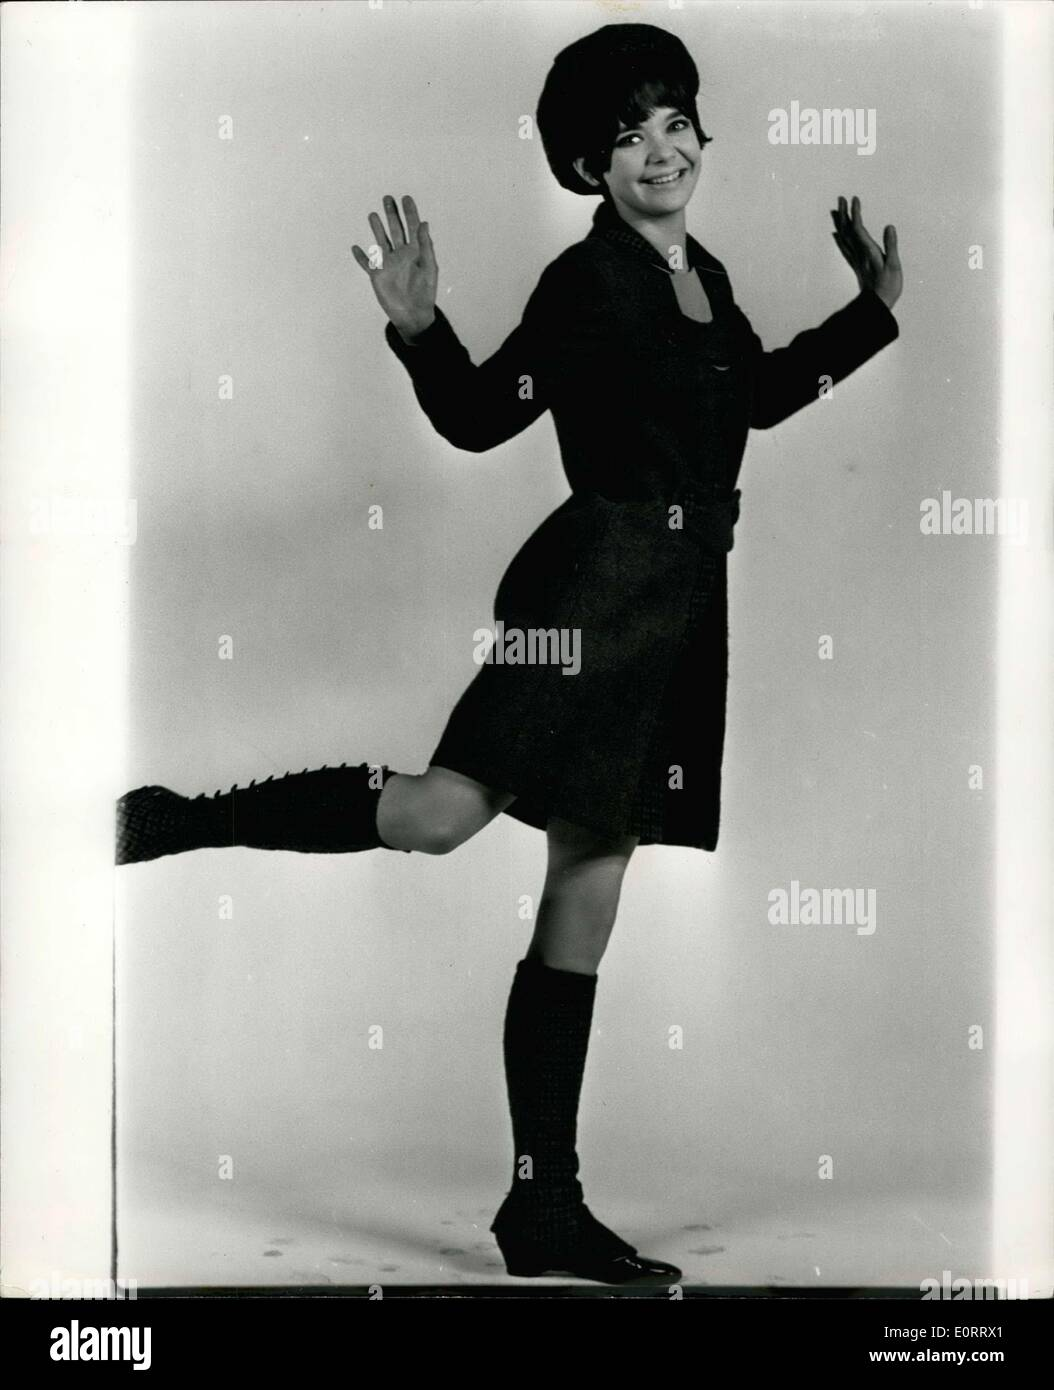 May 08, 1960 - Pamela to appear in new TV series: Pamela Franklin is what is known as a rising star of show busin At 16 she - Stock Image